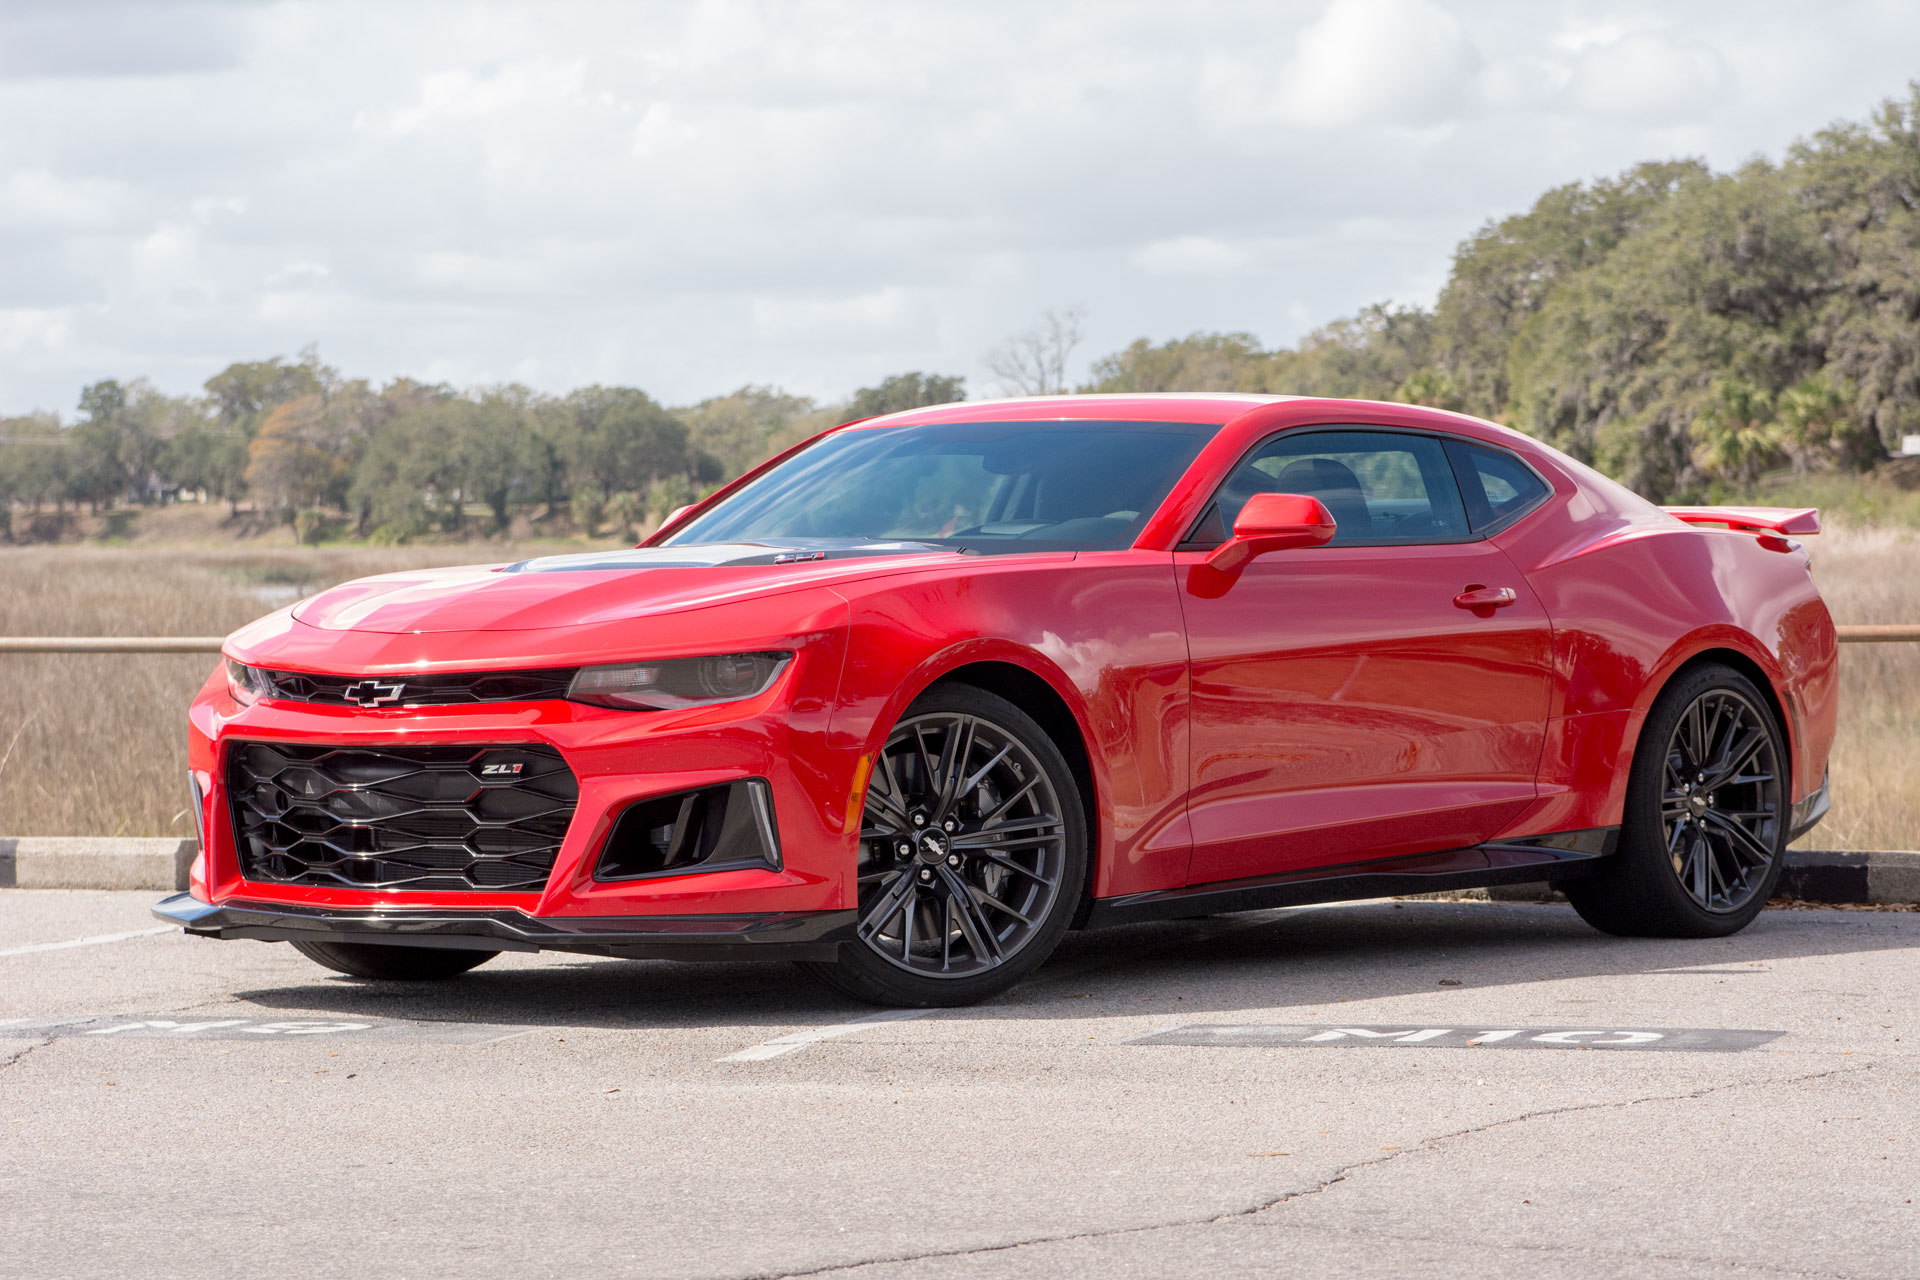 2017 Chevrolet Camaro Zl1 First Drive Review Too Fast To